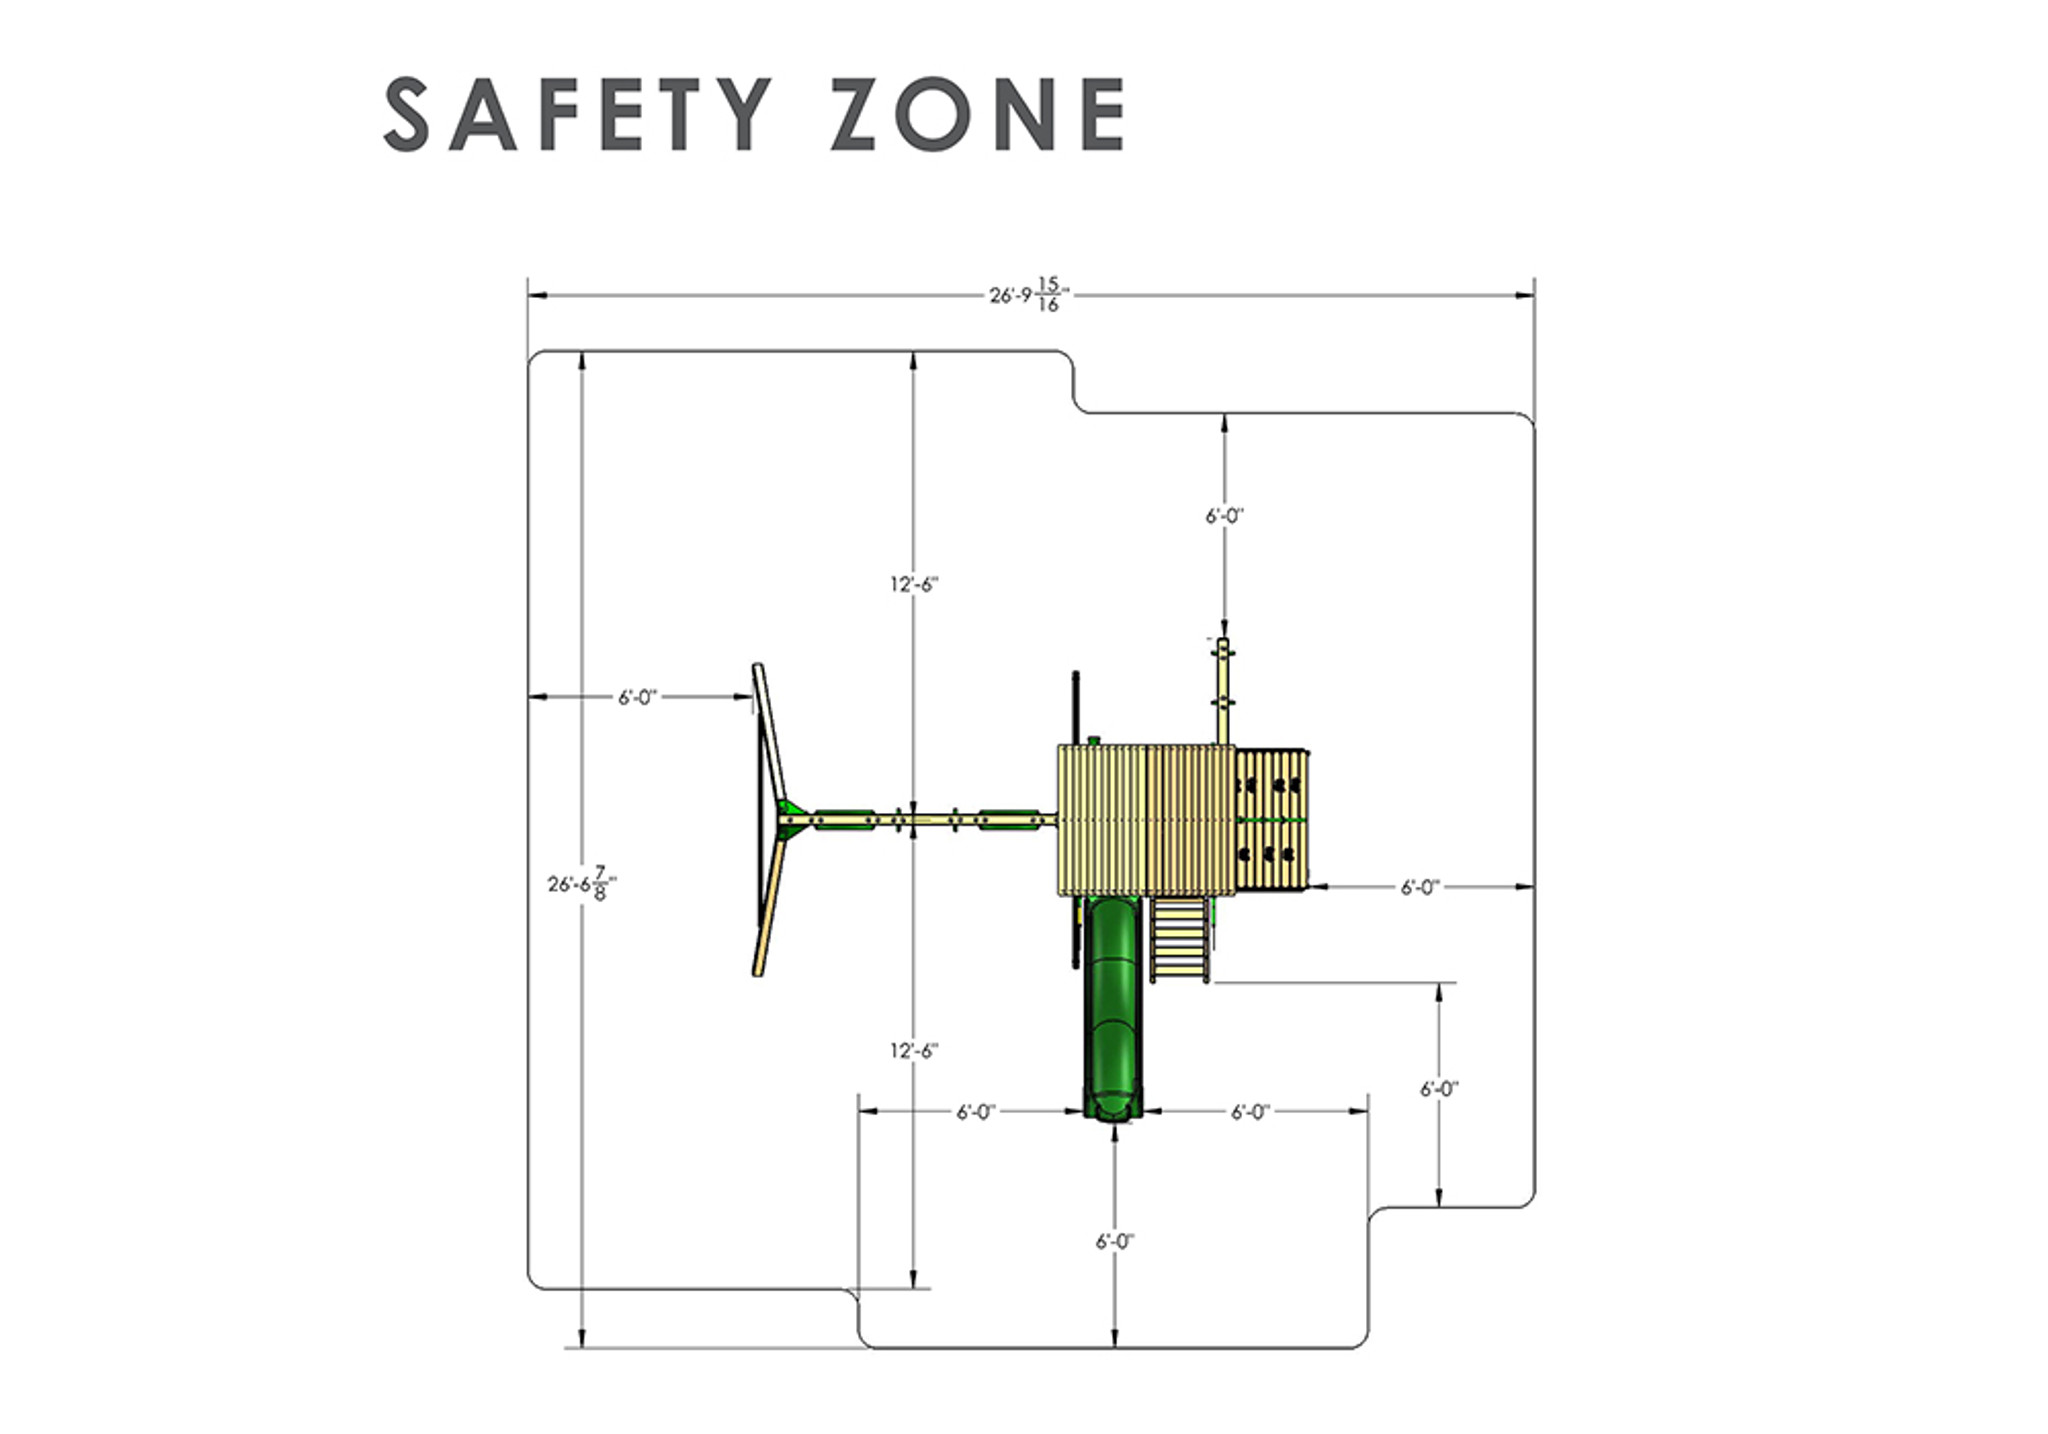 Overhead Safety Zone View of Passage II w/ Trapeze Bar Swing Set from Playnation